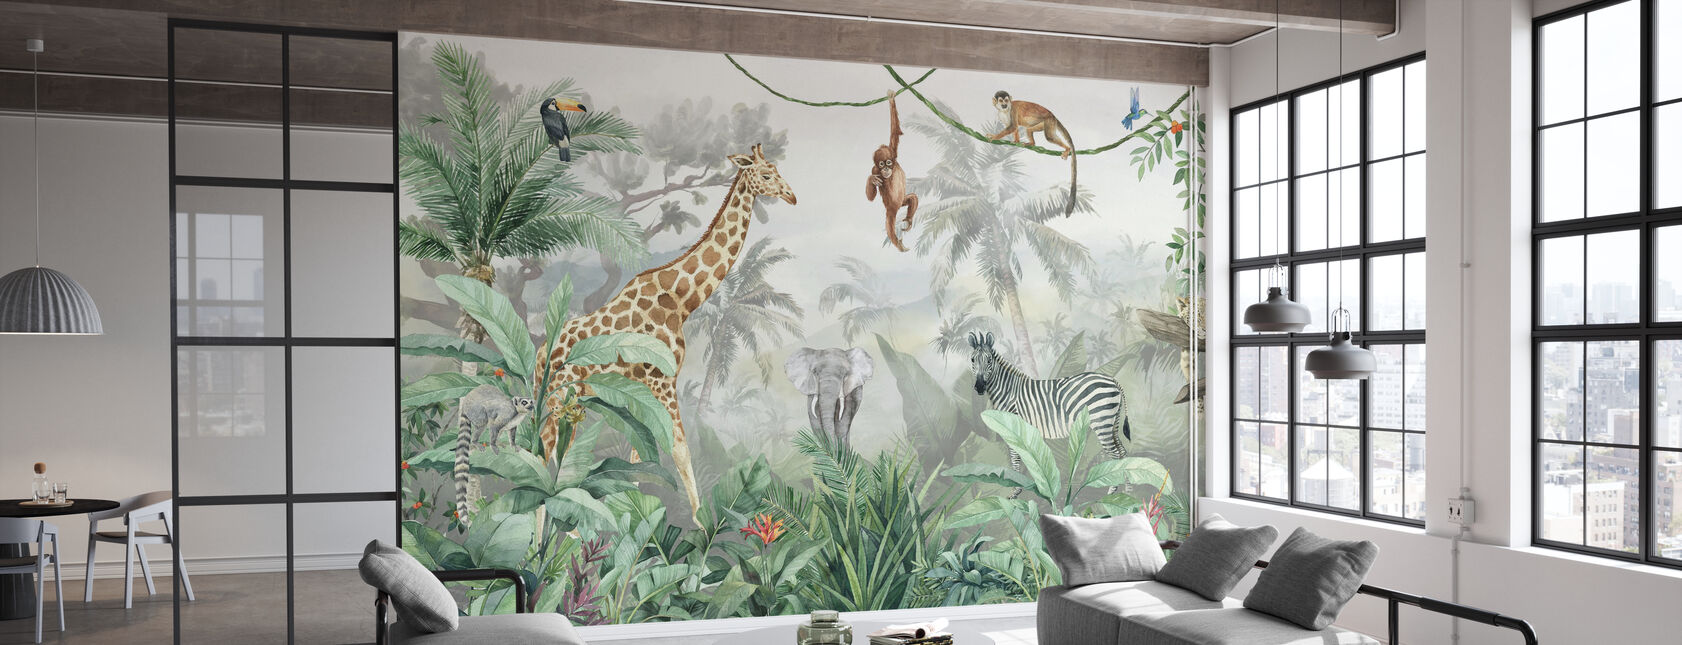 Jungle Friends with Jungle Background - Wallpaper - Office